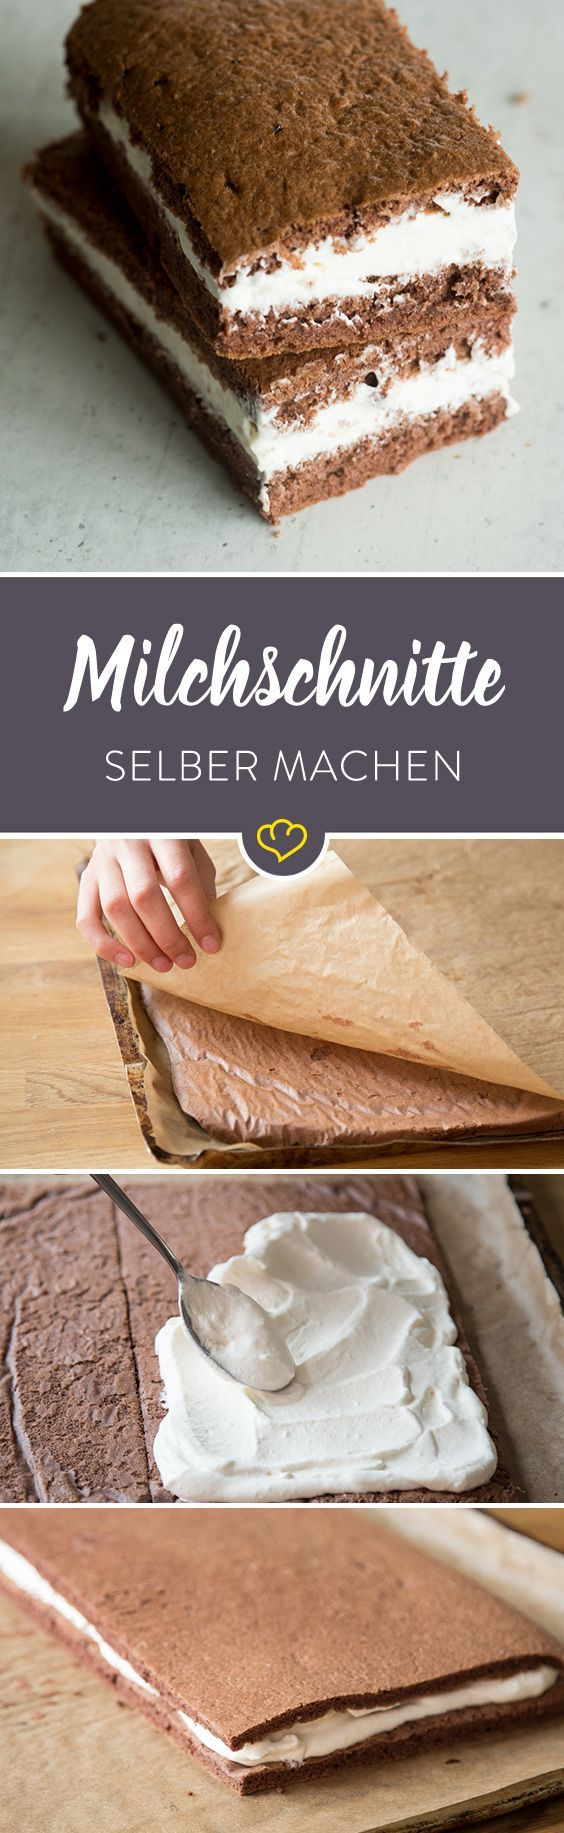 Photo of Schoko-Sahne-Biskuit à la Milchschnitte